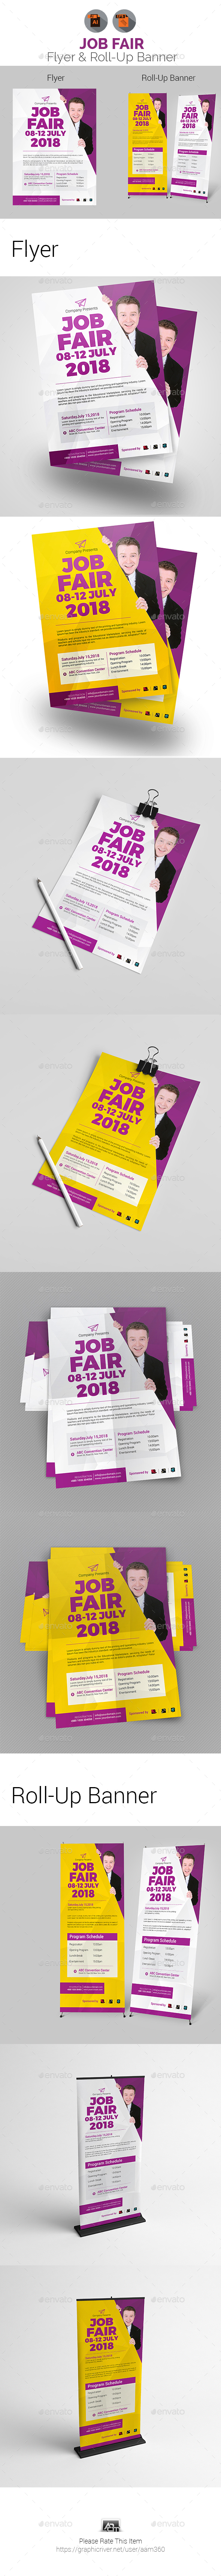 Job/Career Fair Flyer & Roll-Up Banner - Print Templates